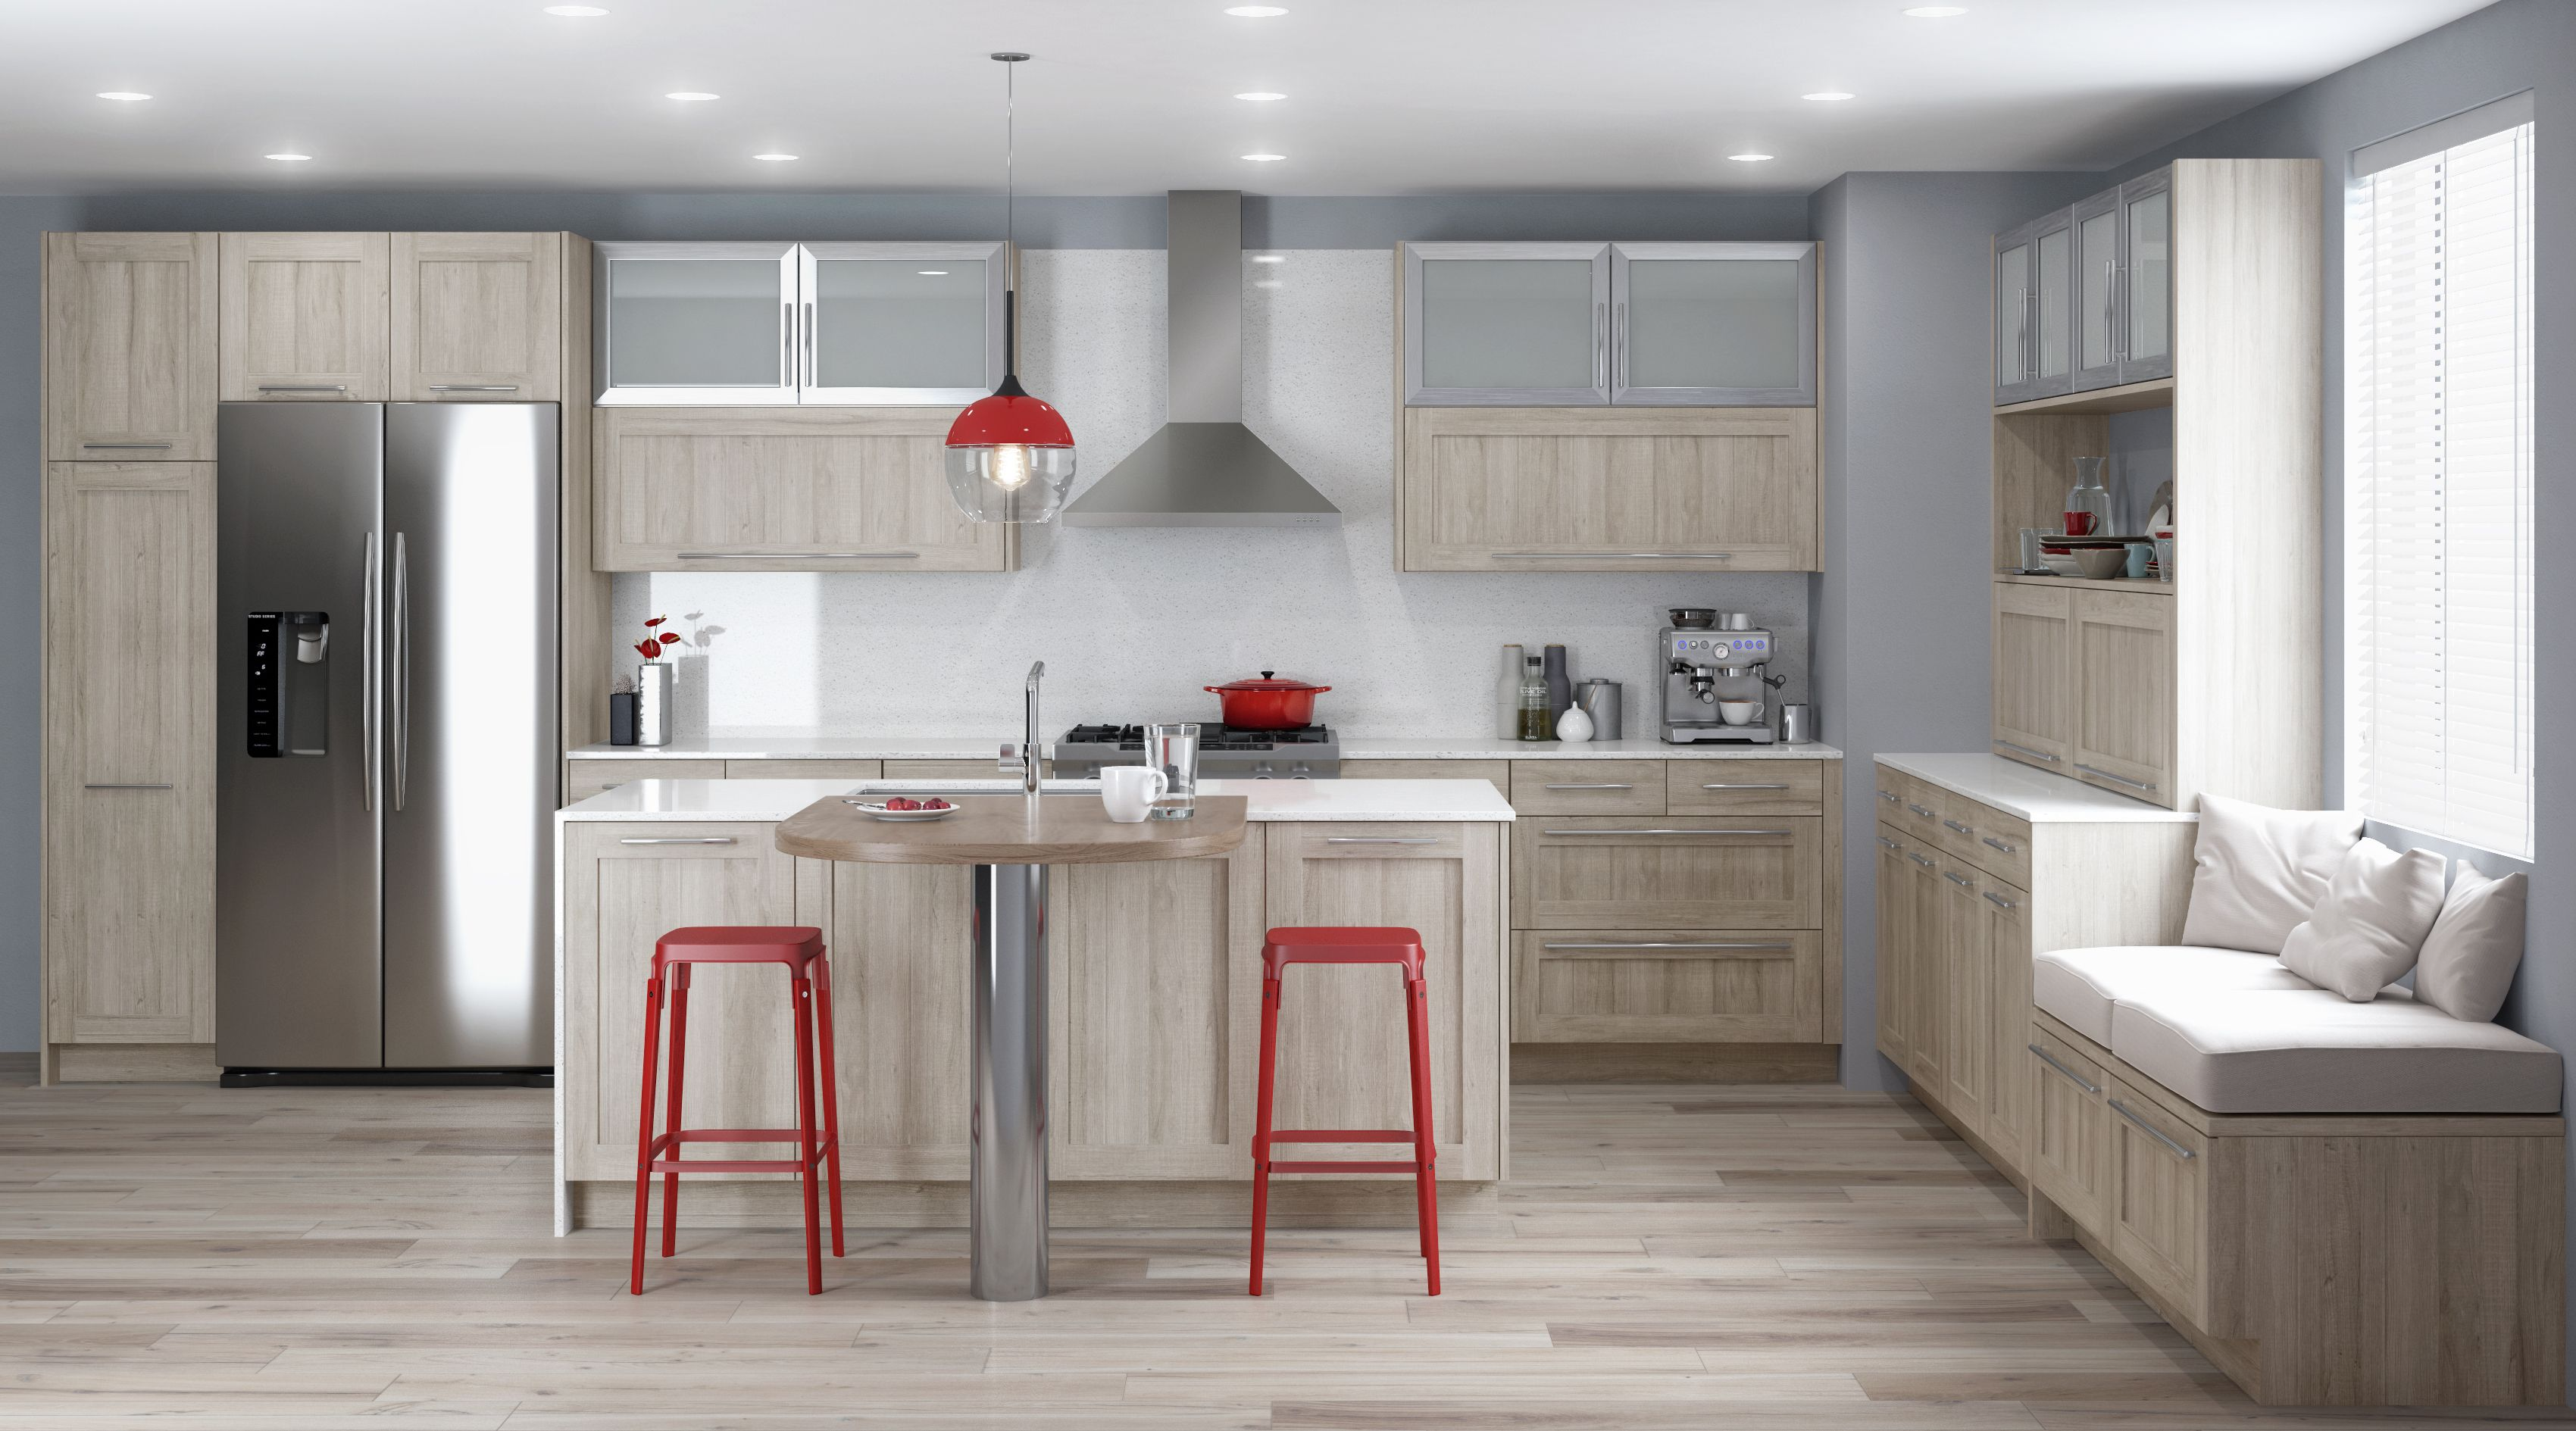 Parma Textured Laminate Coastal Coastal Kitchen Cabinets Kitchen Cabinets Contemporary Walnut Kitchen